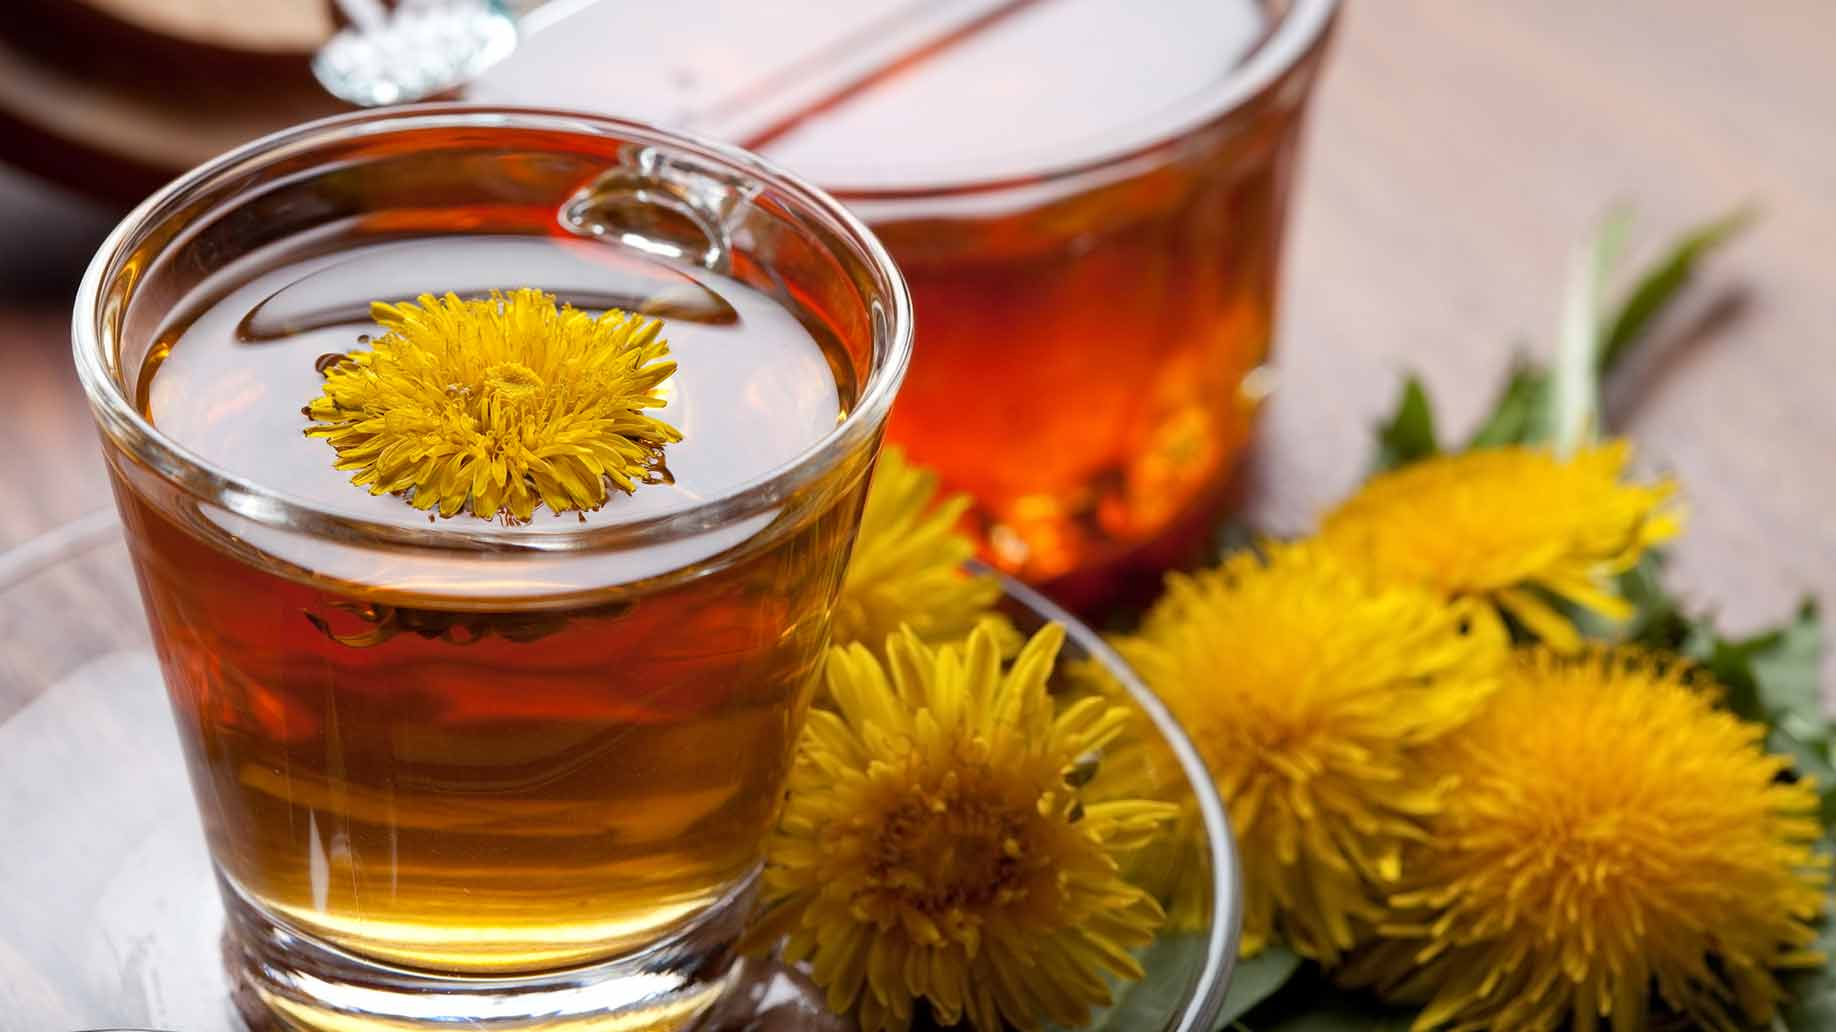 dandelion tea liver cleanse fresh dandelion leaves